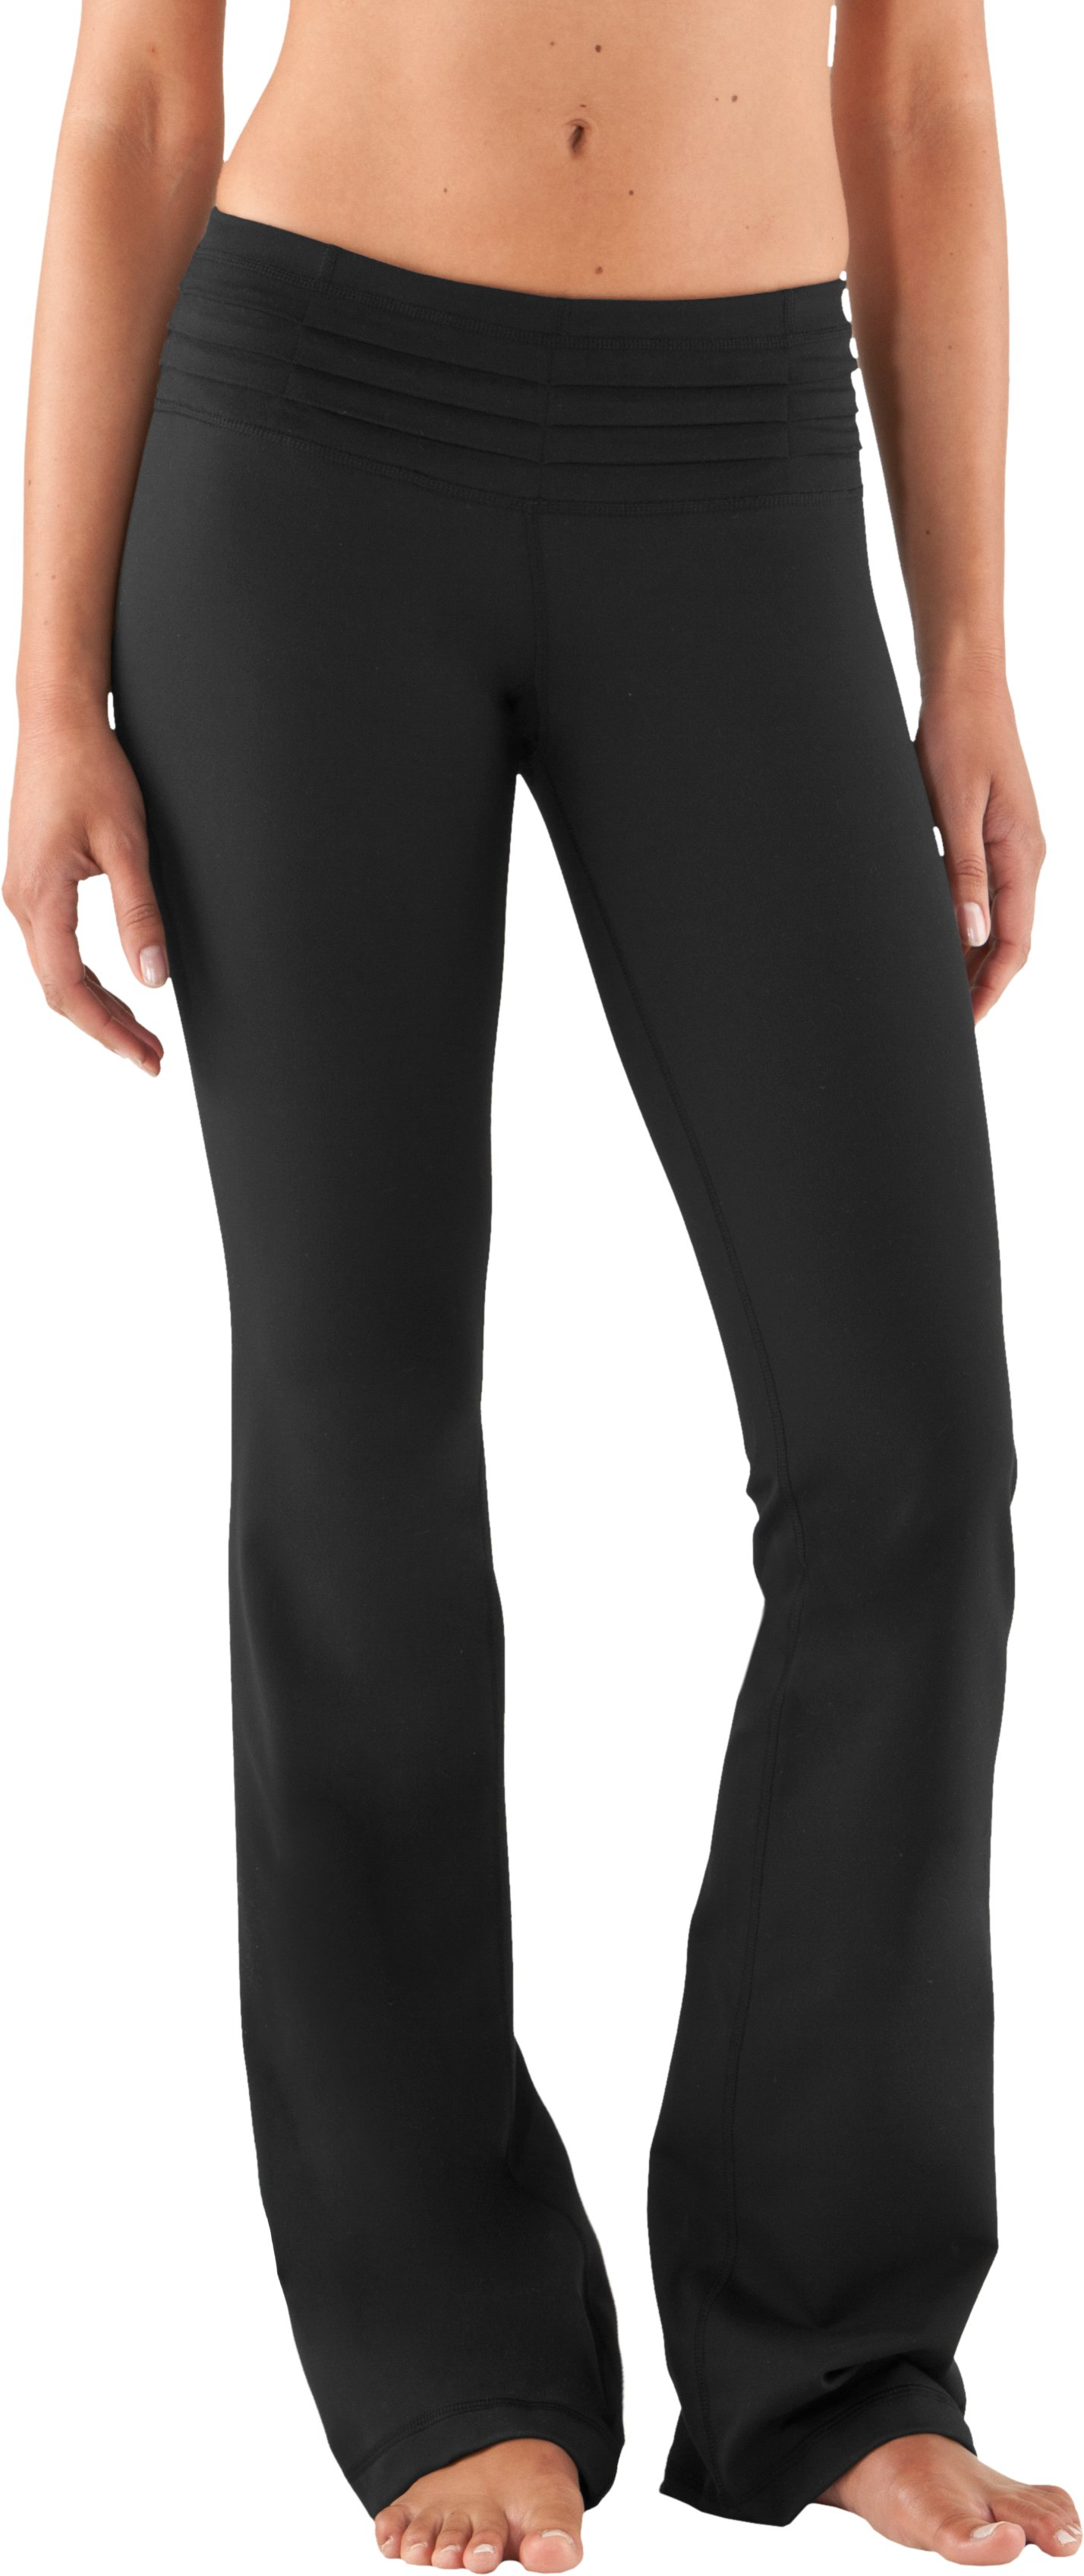 "Women's 35.5"" UA Quattro Pant - Tall, Black , undefined"